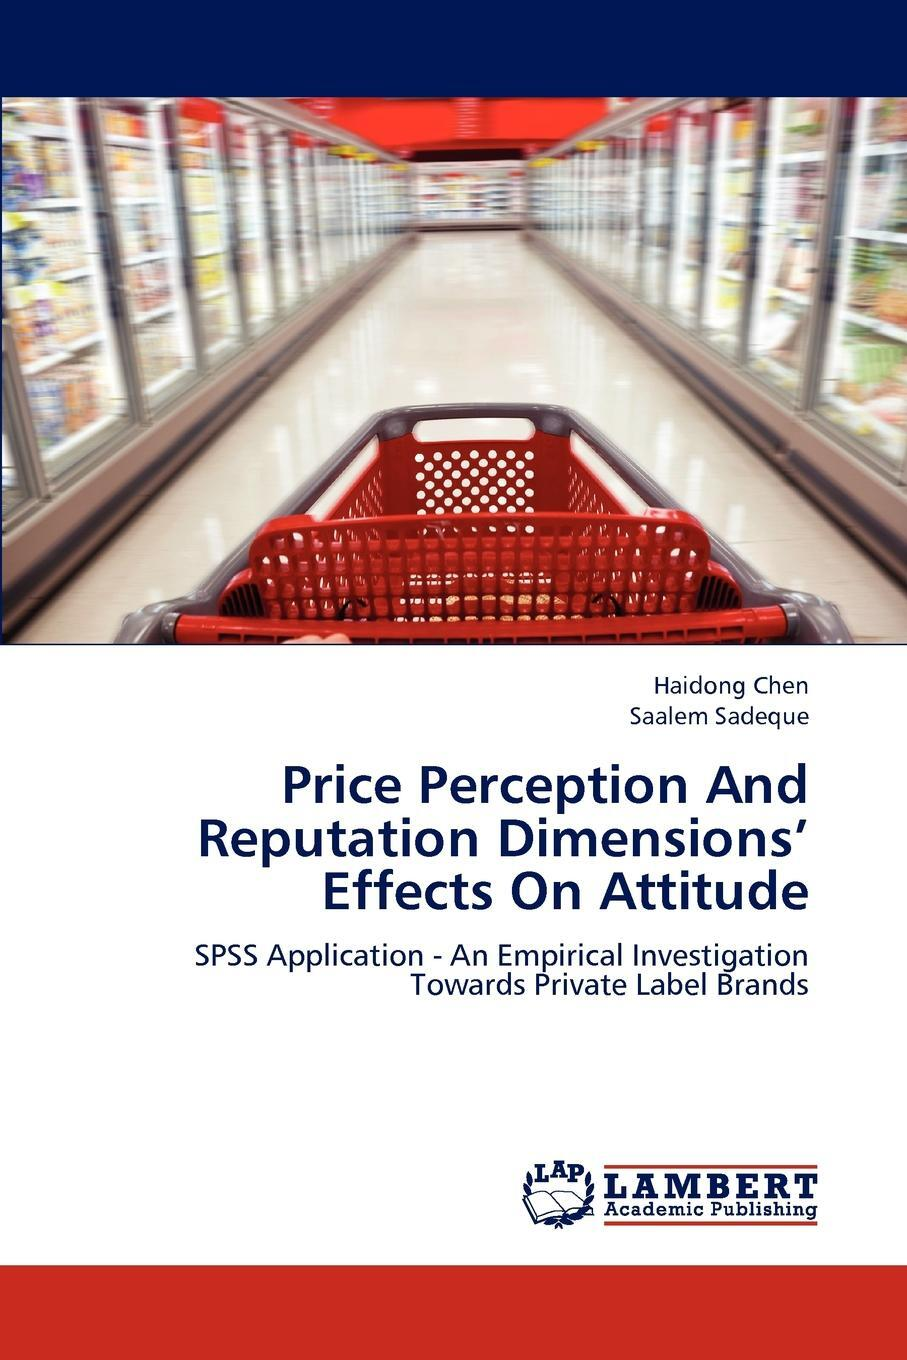 Price Perception And Reputation Dimensions` Effects On Attitude